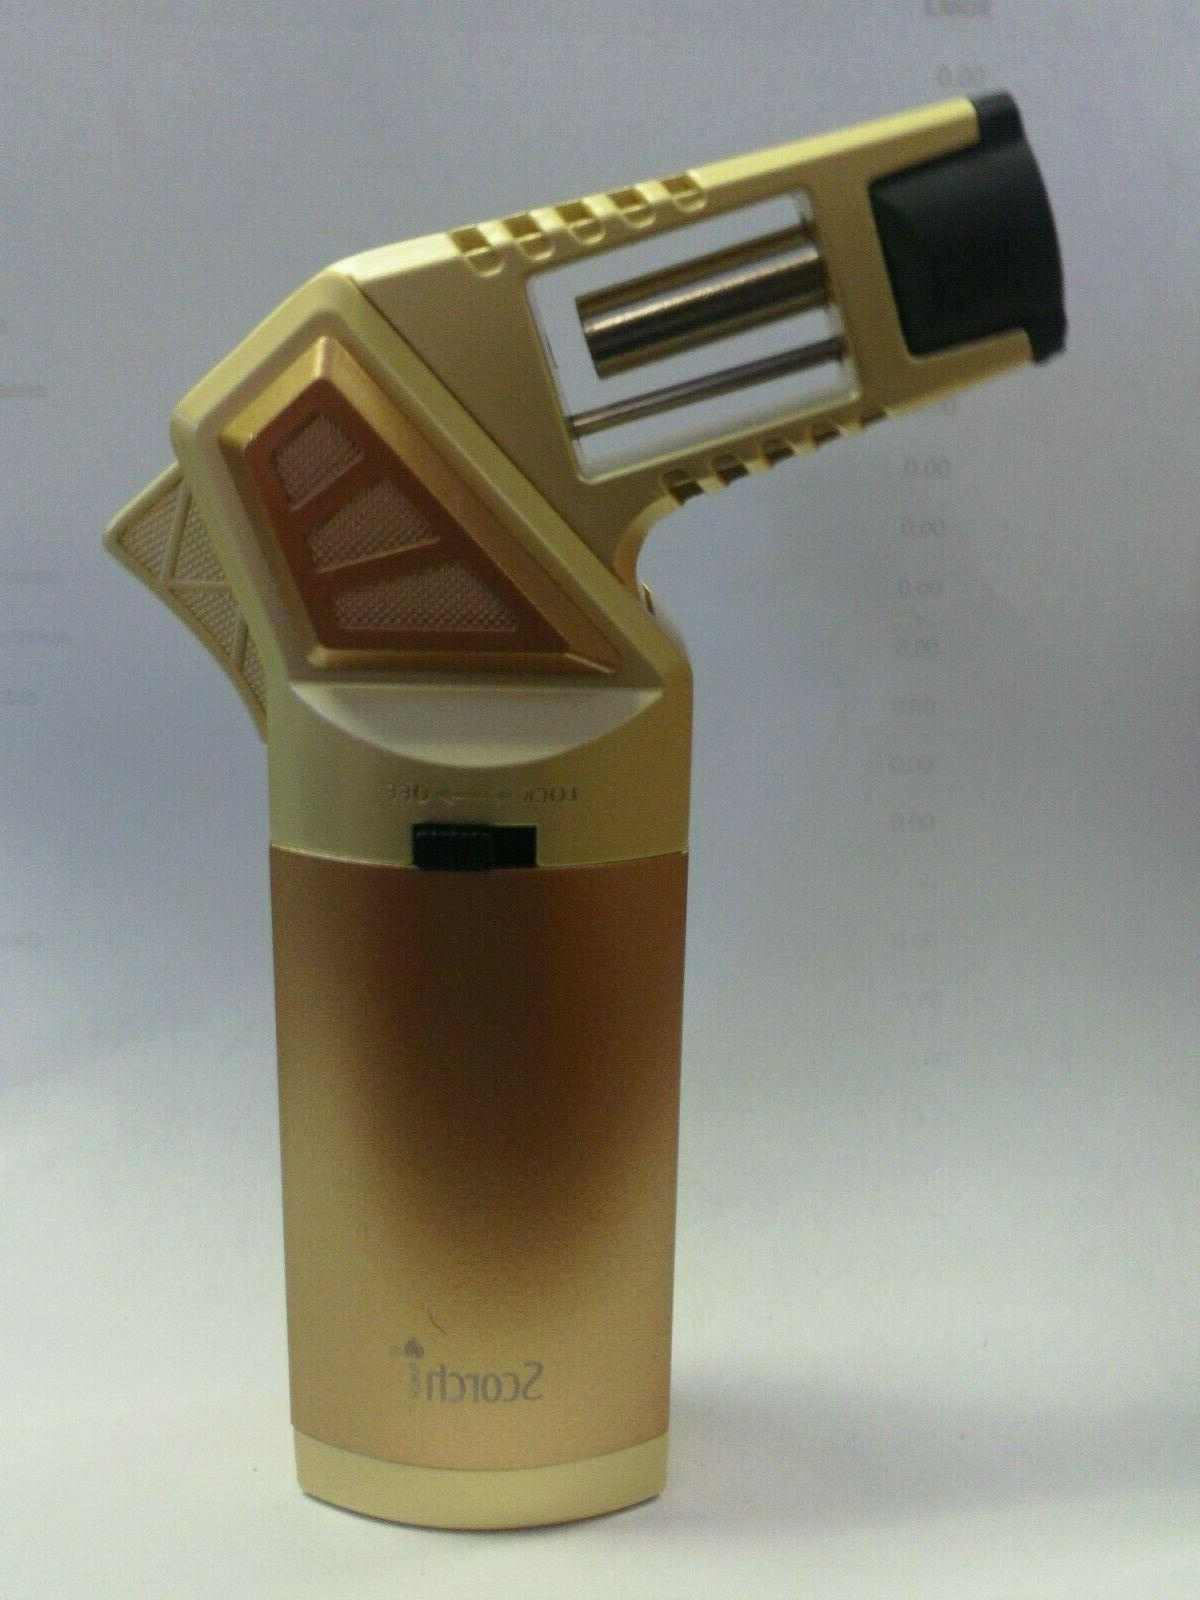 SCORCH TORCH #61575 GRIP SINGLE BUTANE CIGARETTE COPPER